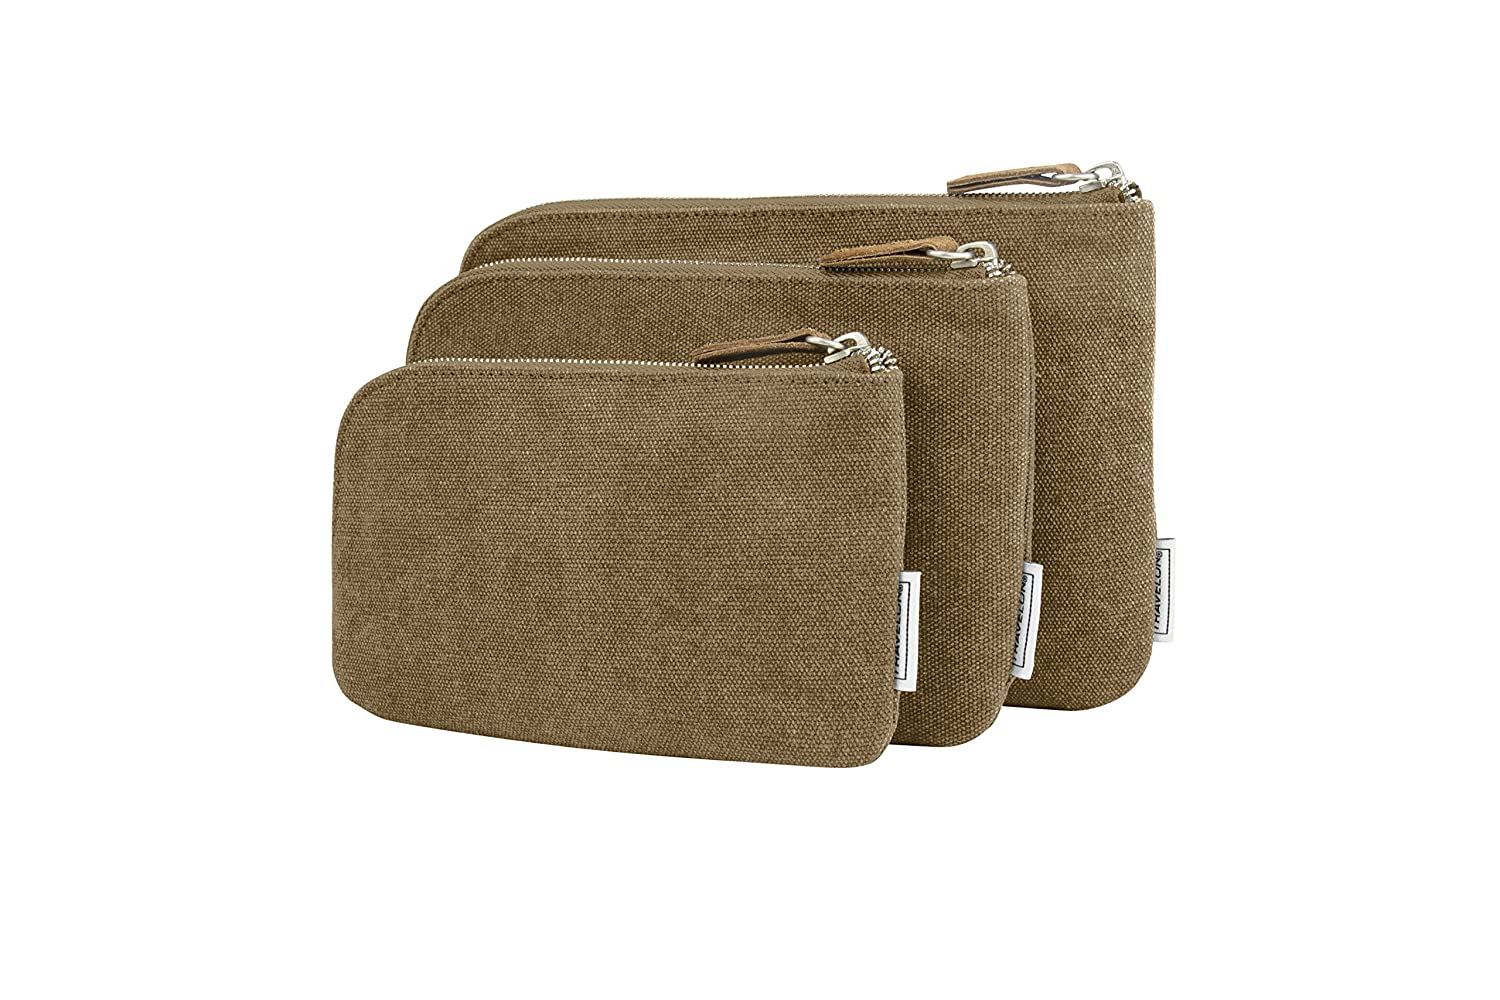 Travelon Heritage Ensemble de 3 Pouches, Taille unique flocons d\'avoine Taille unique flocons d'avoine 33087 700